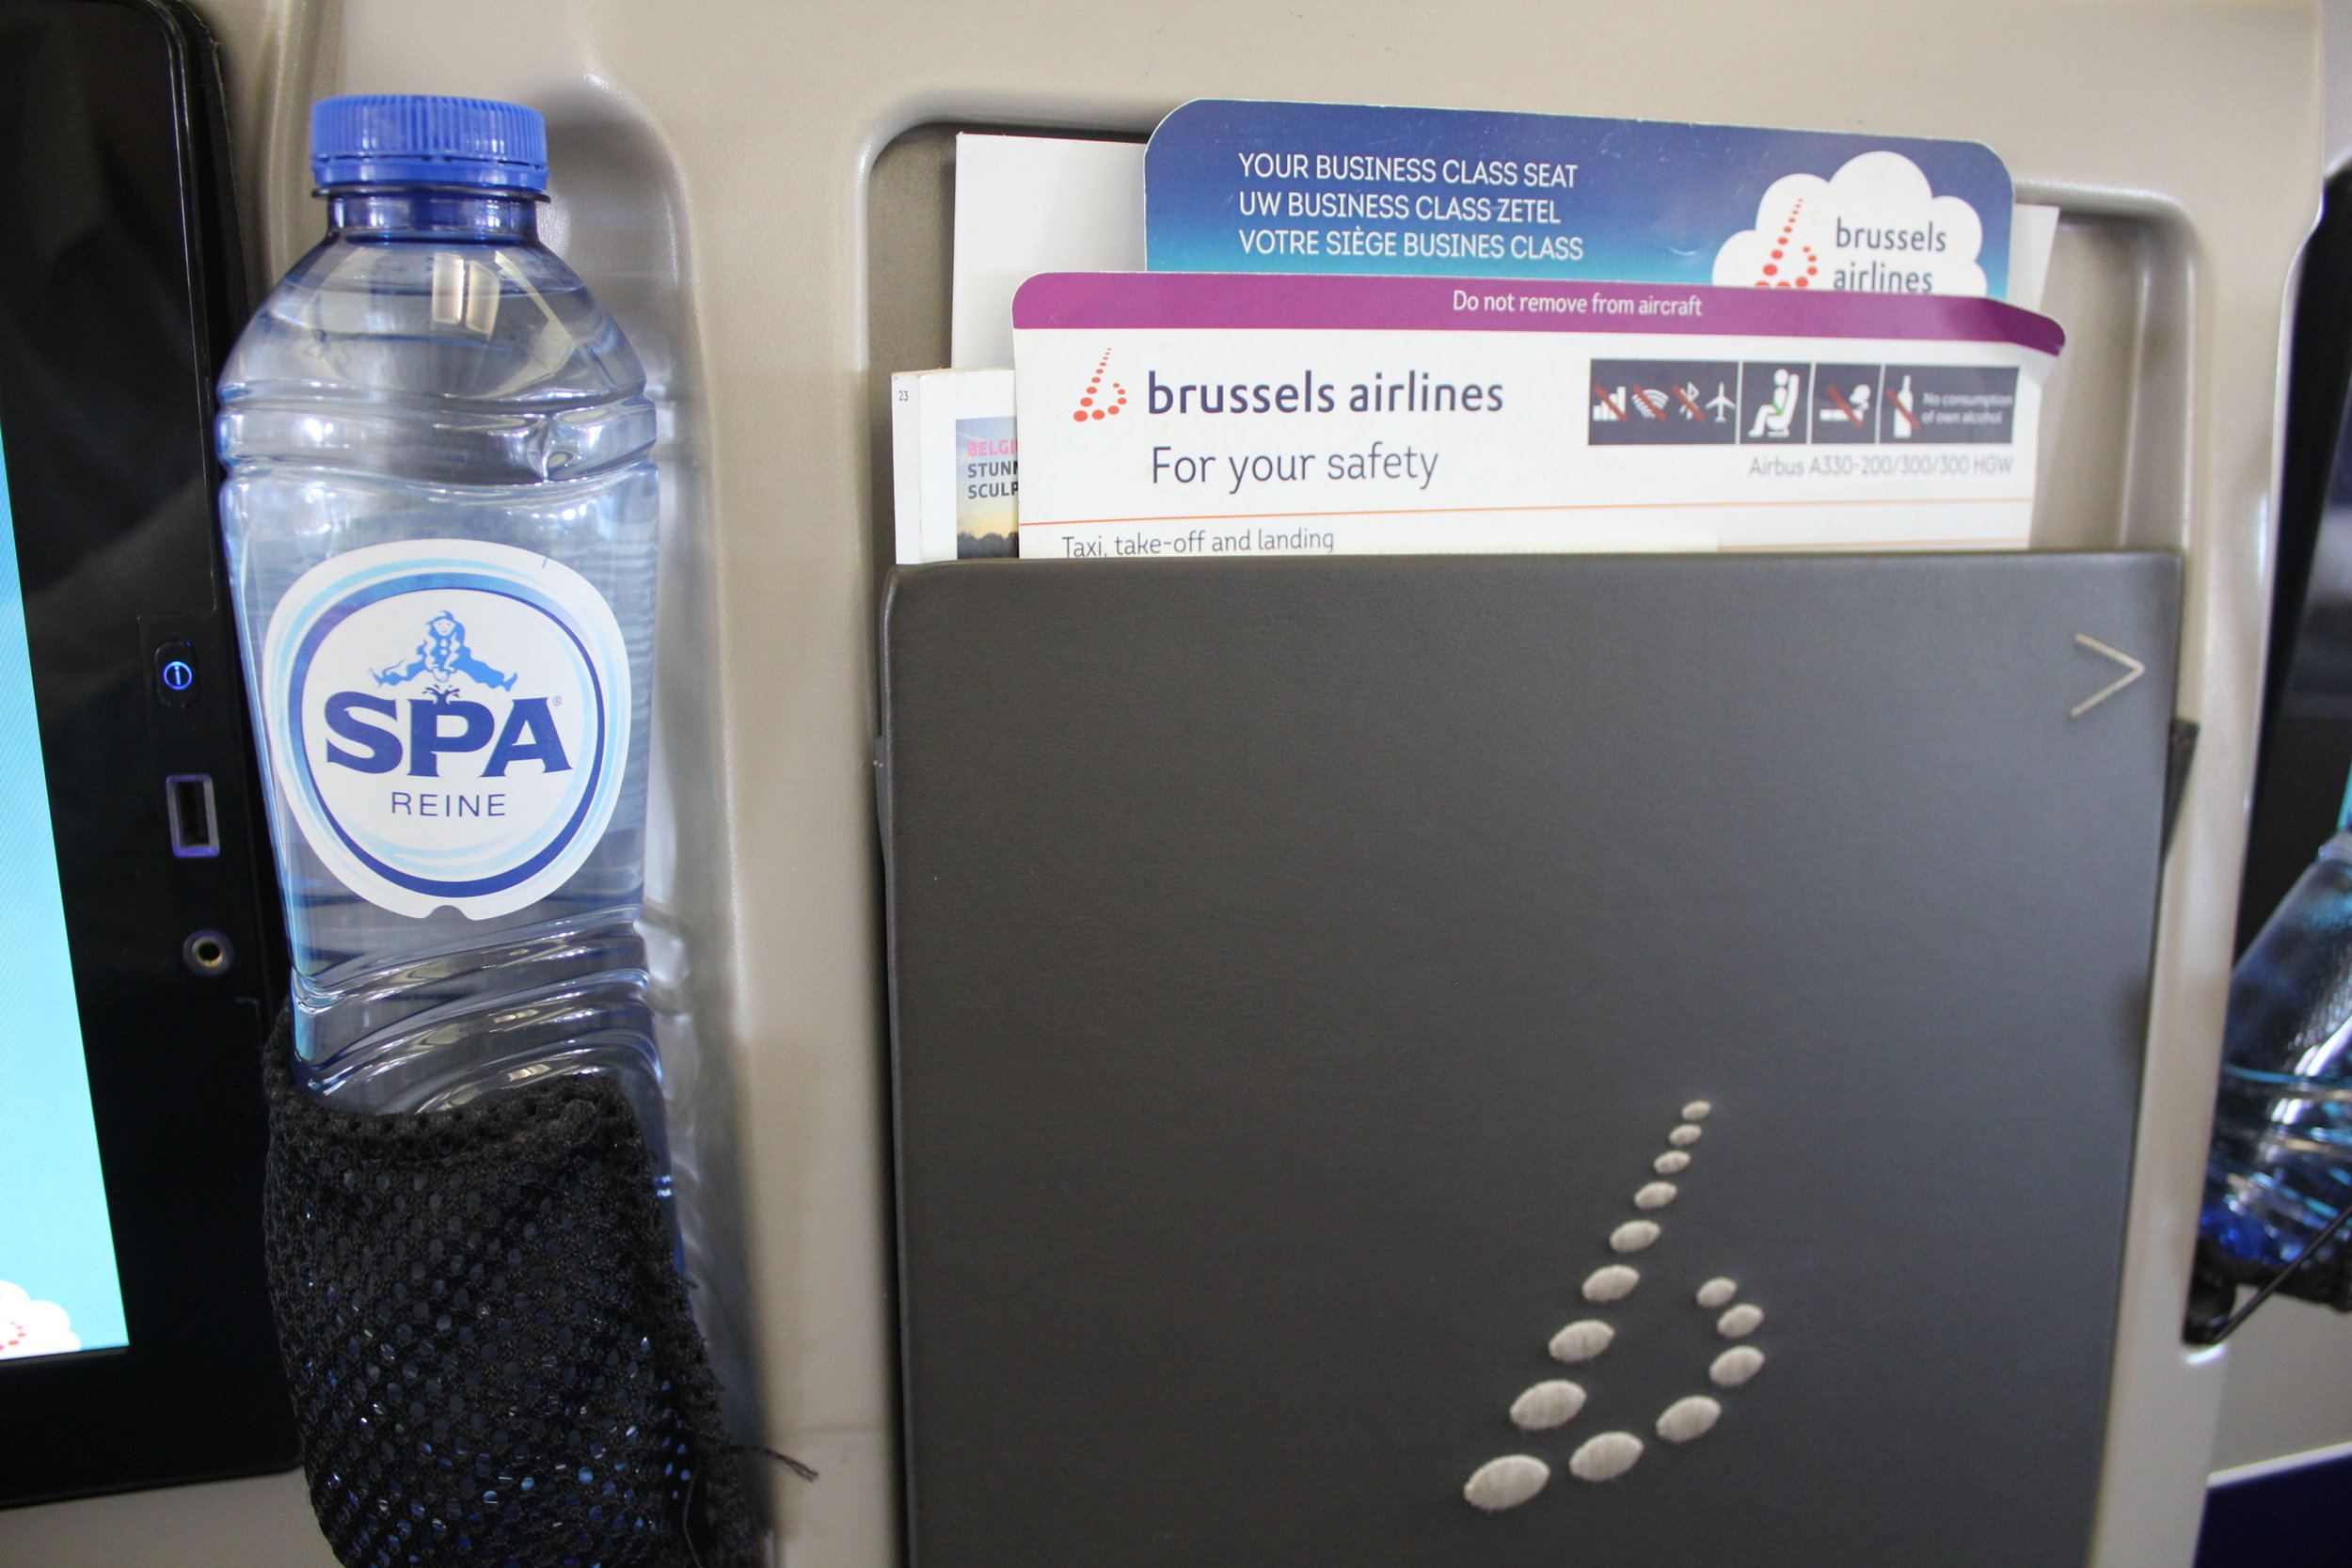 Brussels Airlines business class – Bottled water